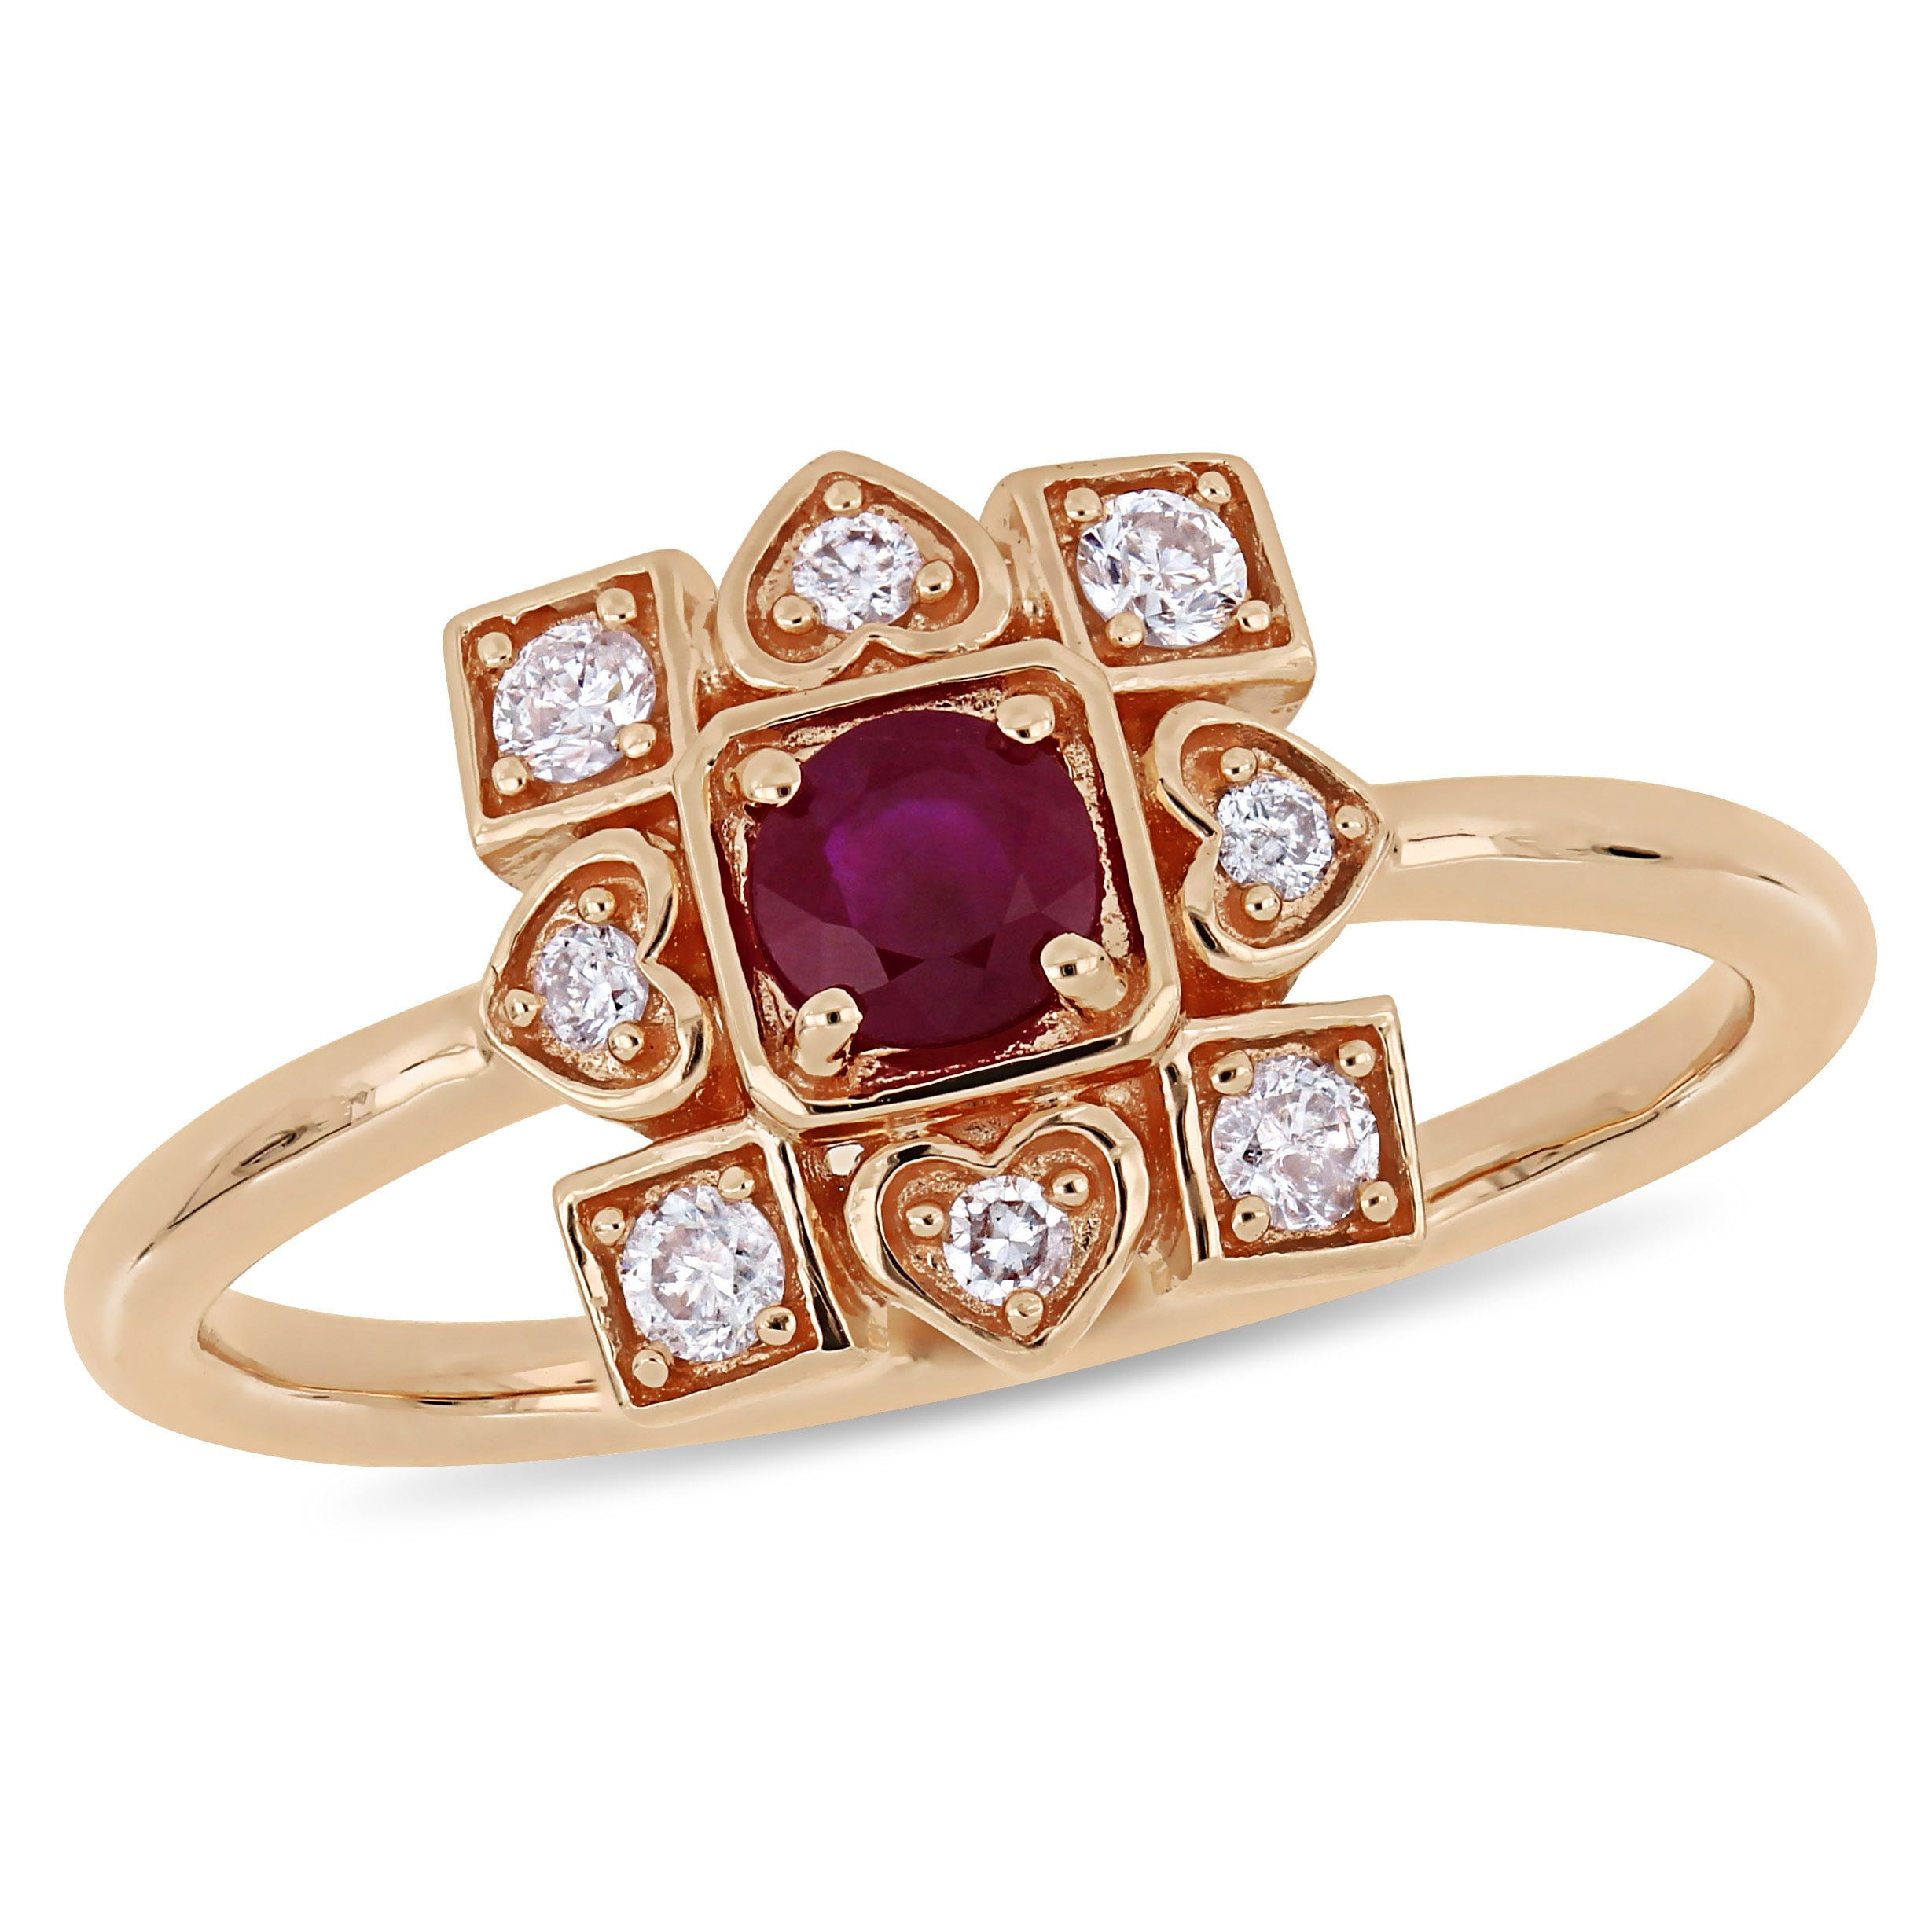 Everly Vintage-Inspired 1/5ctw. Diamond & Ruby Ring in 10k Rose Gold